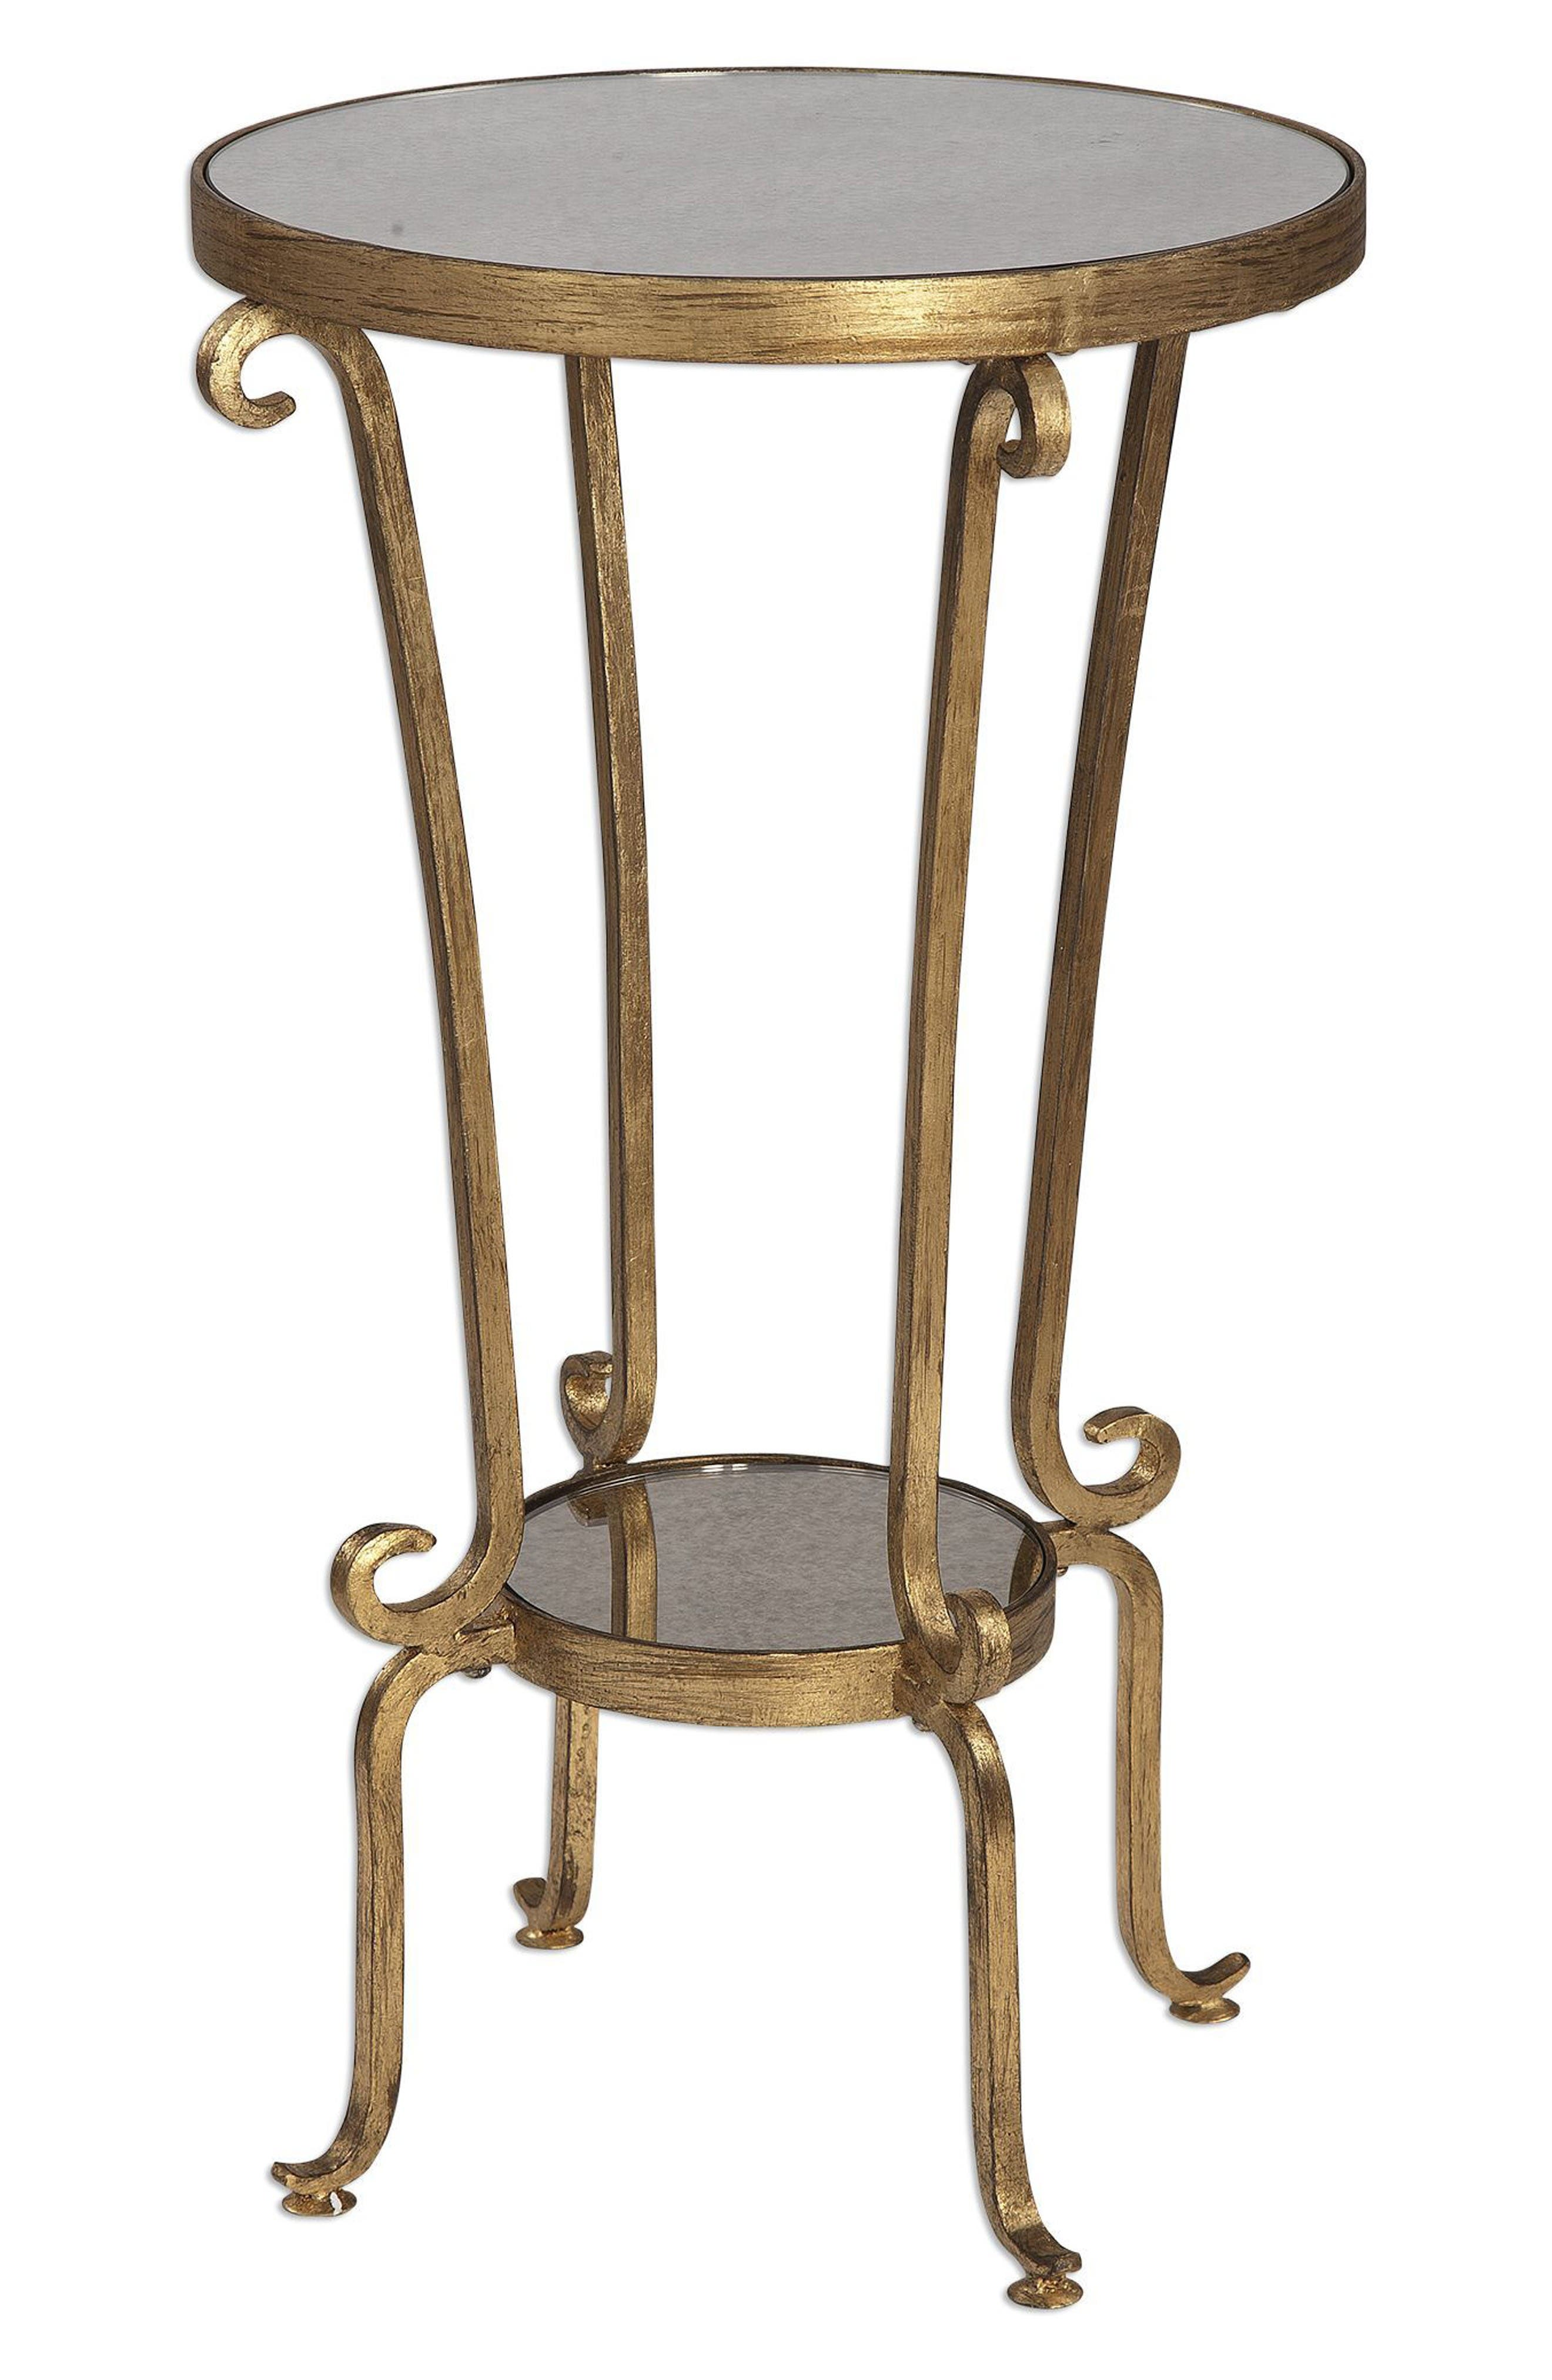 Main Image - Uttermost Vevina Accent Table